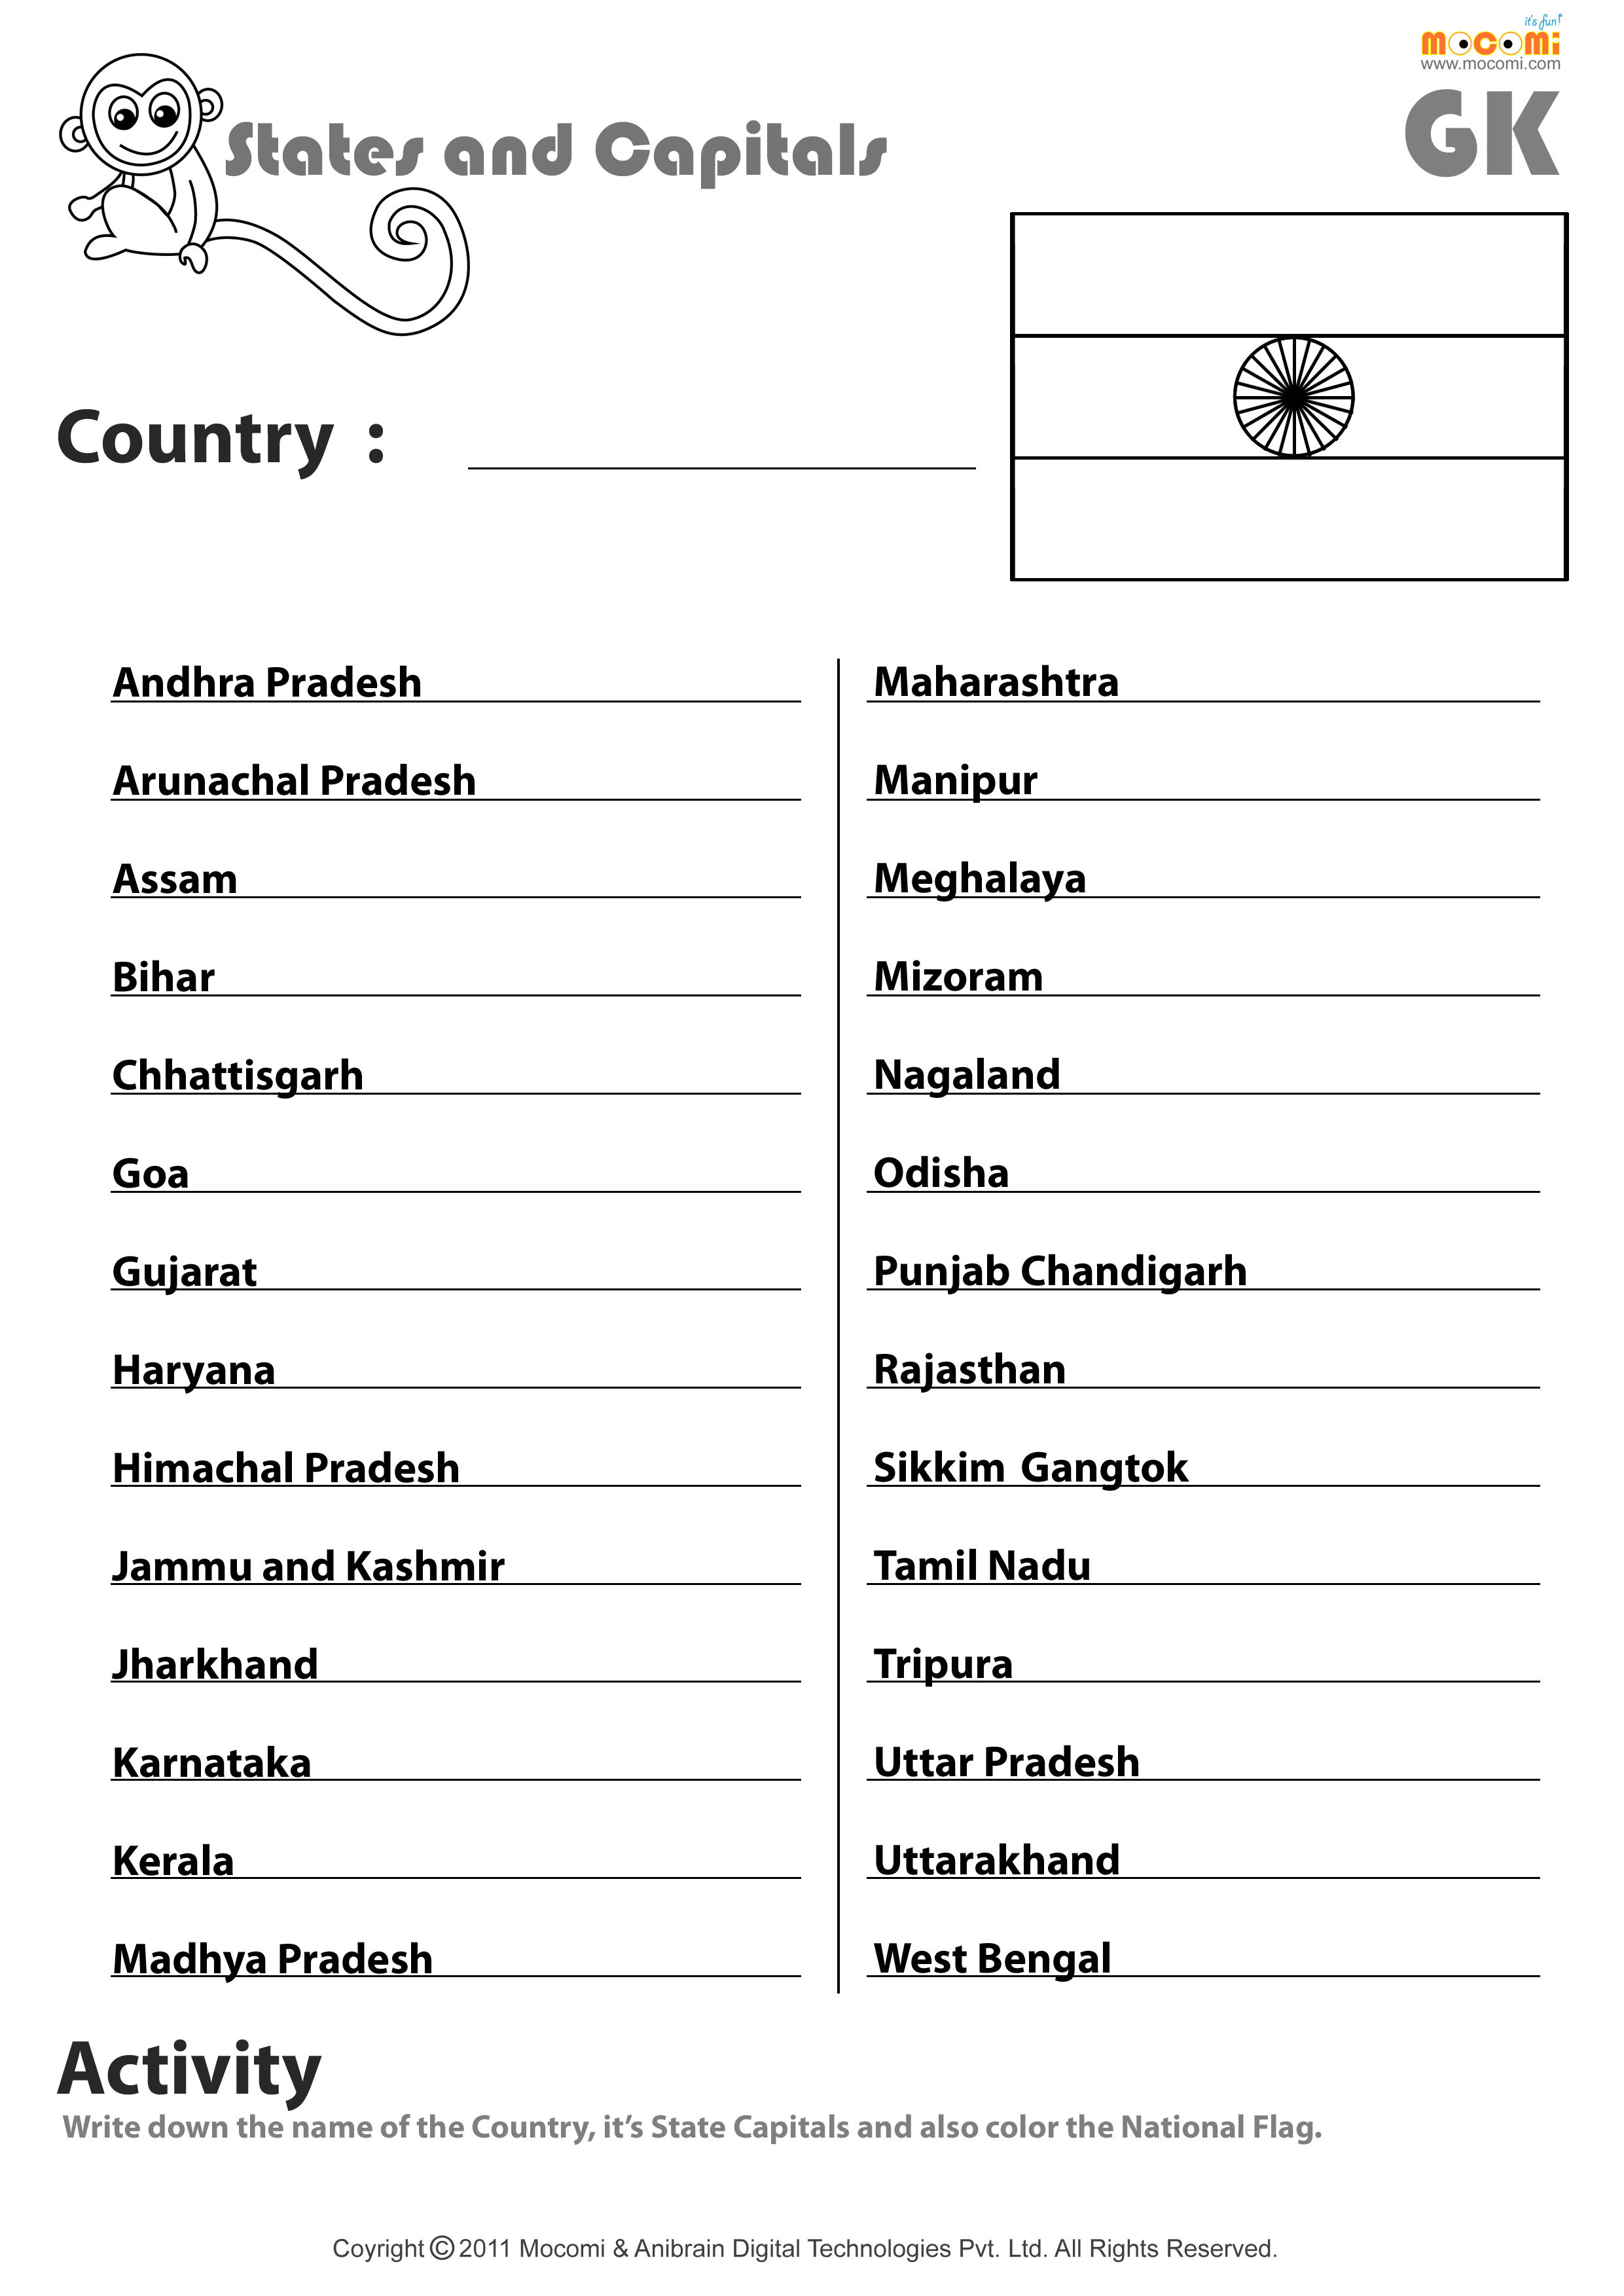 State and Capital Quiz Printable Indian States and their Capitals English Worksheets for